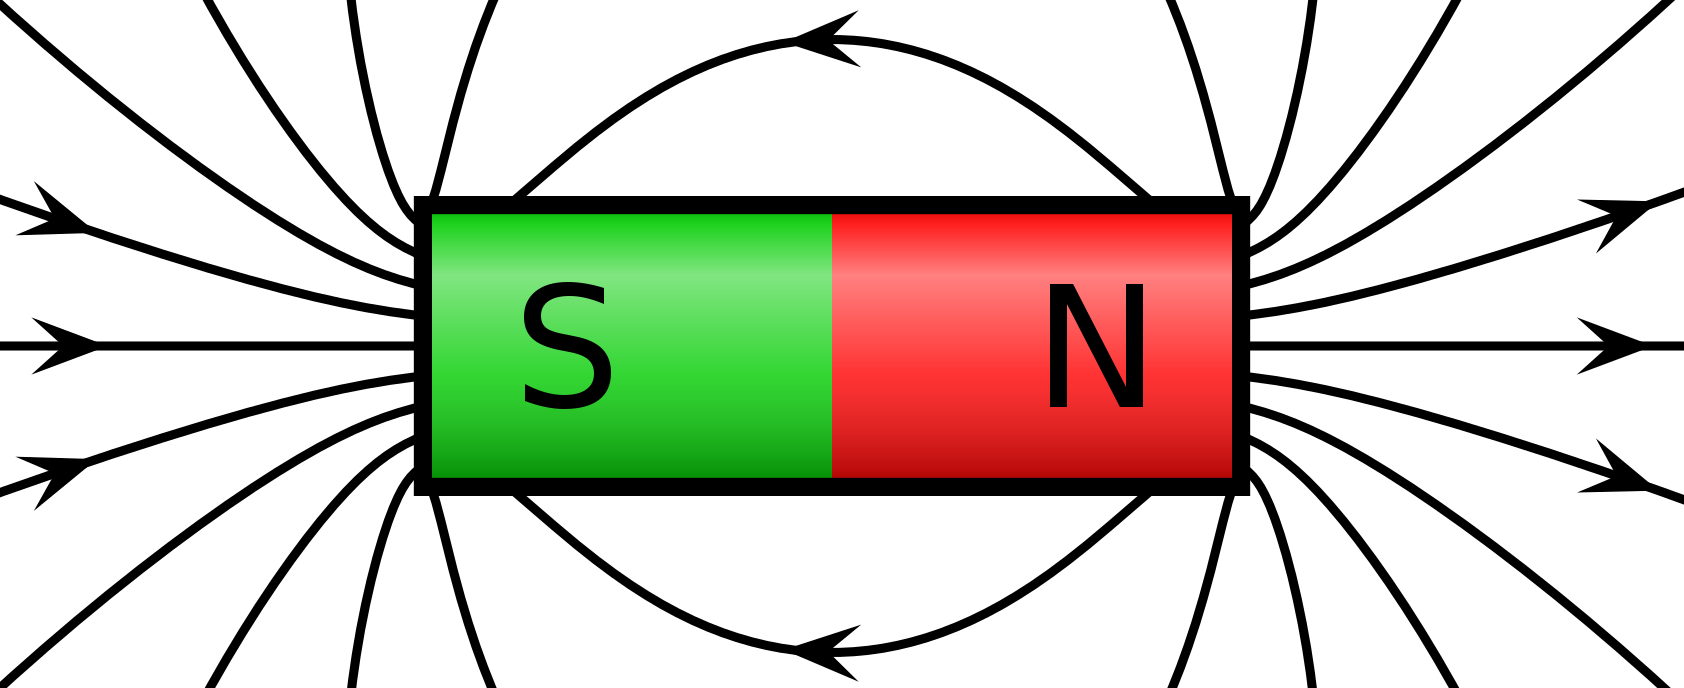 VFPt_cylindrical_magnet_thumb.svg